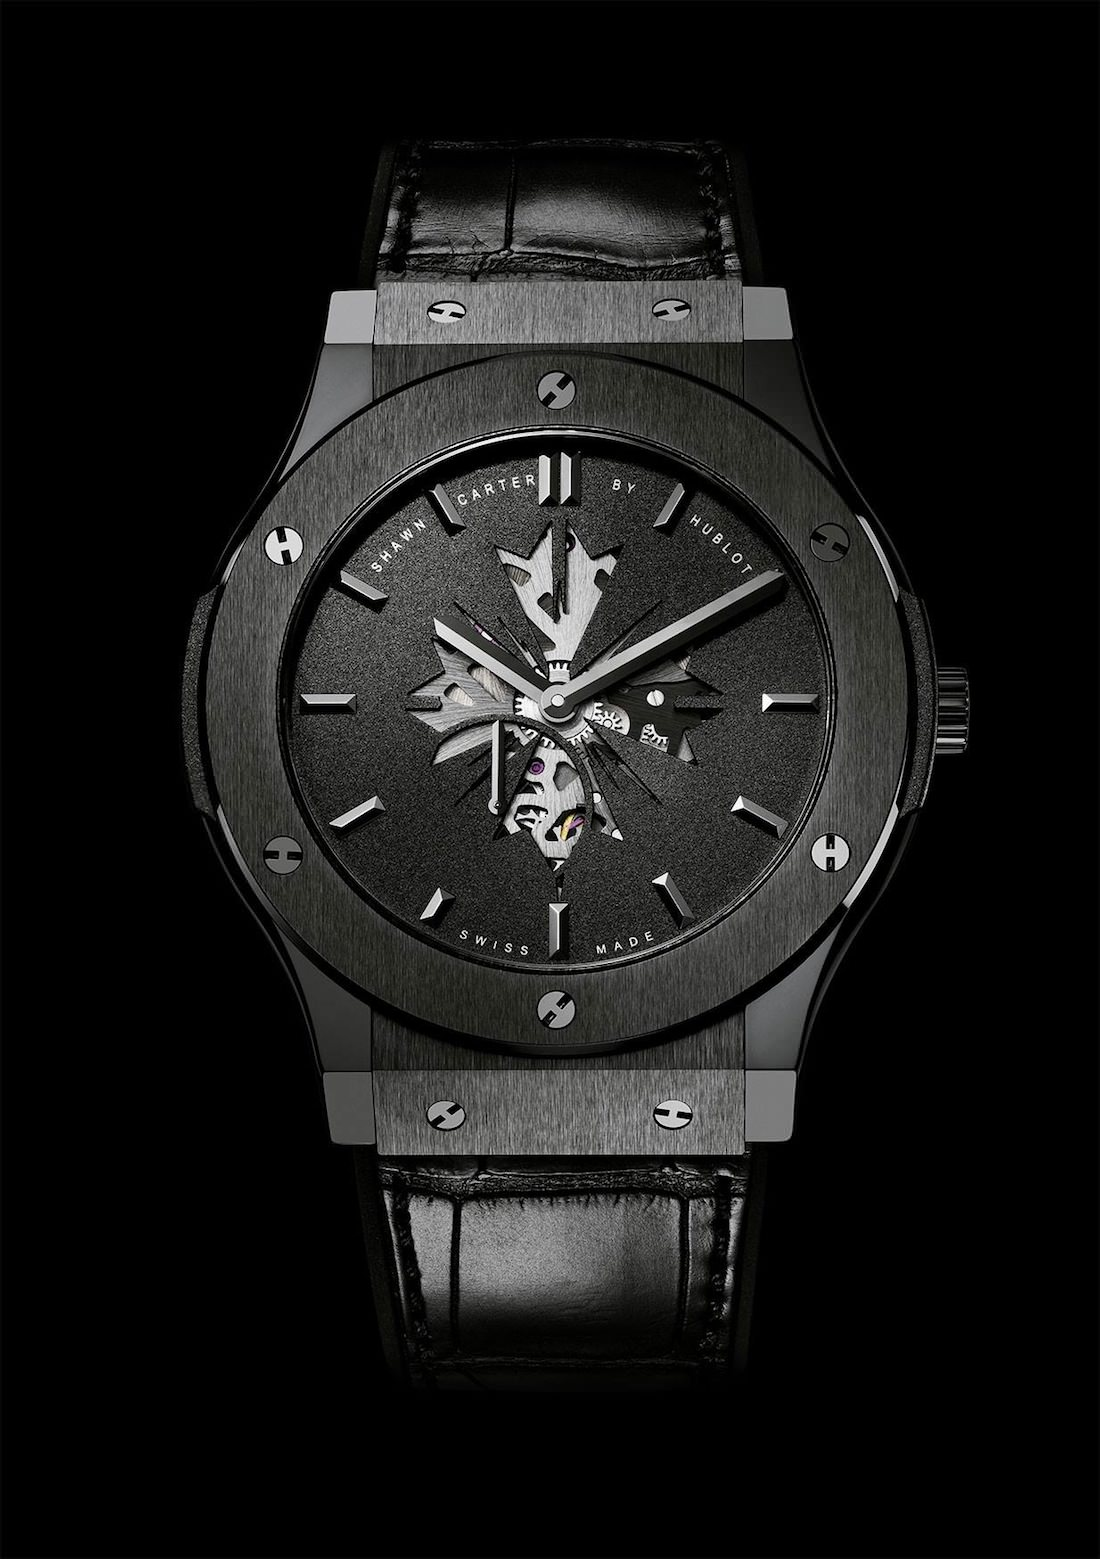 Hublot-Shawn-Carter-jayz-04